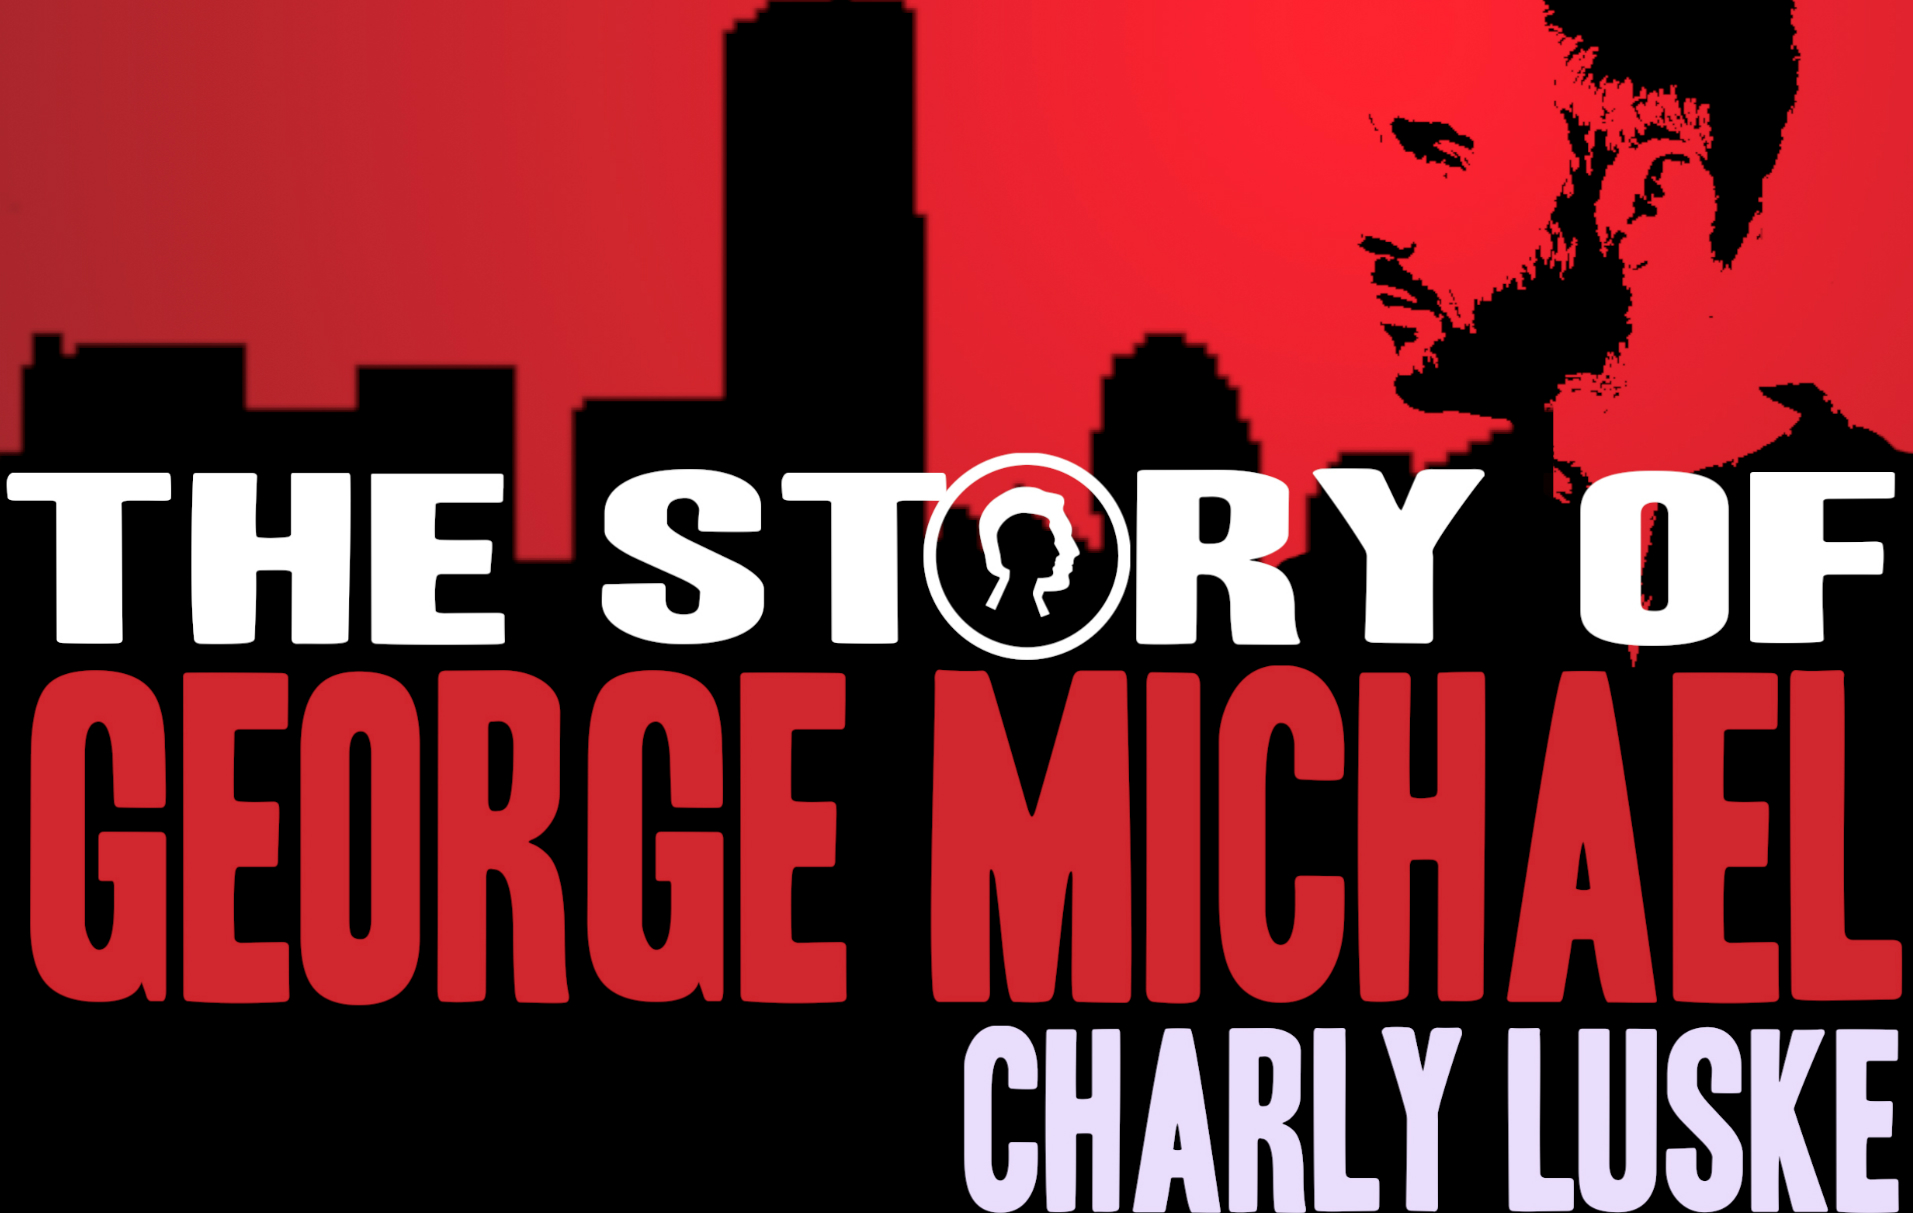 20181114-Charly-Luske-Presents---The-Story-of-GEORGE-MICHAEL-Foto-rechtenvrij